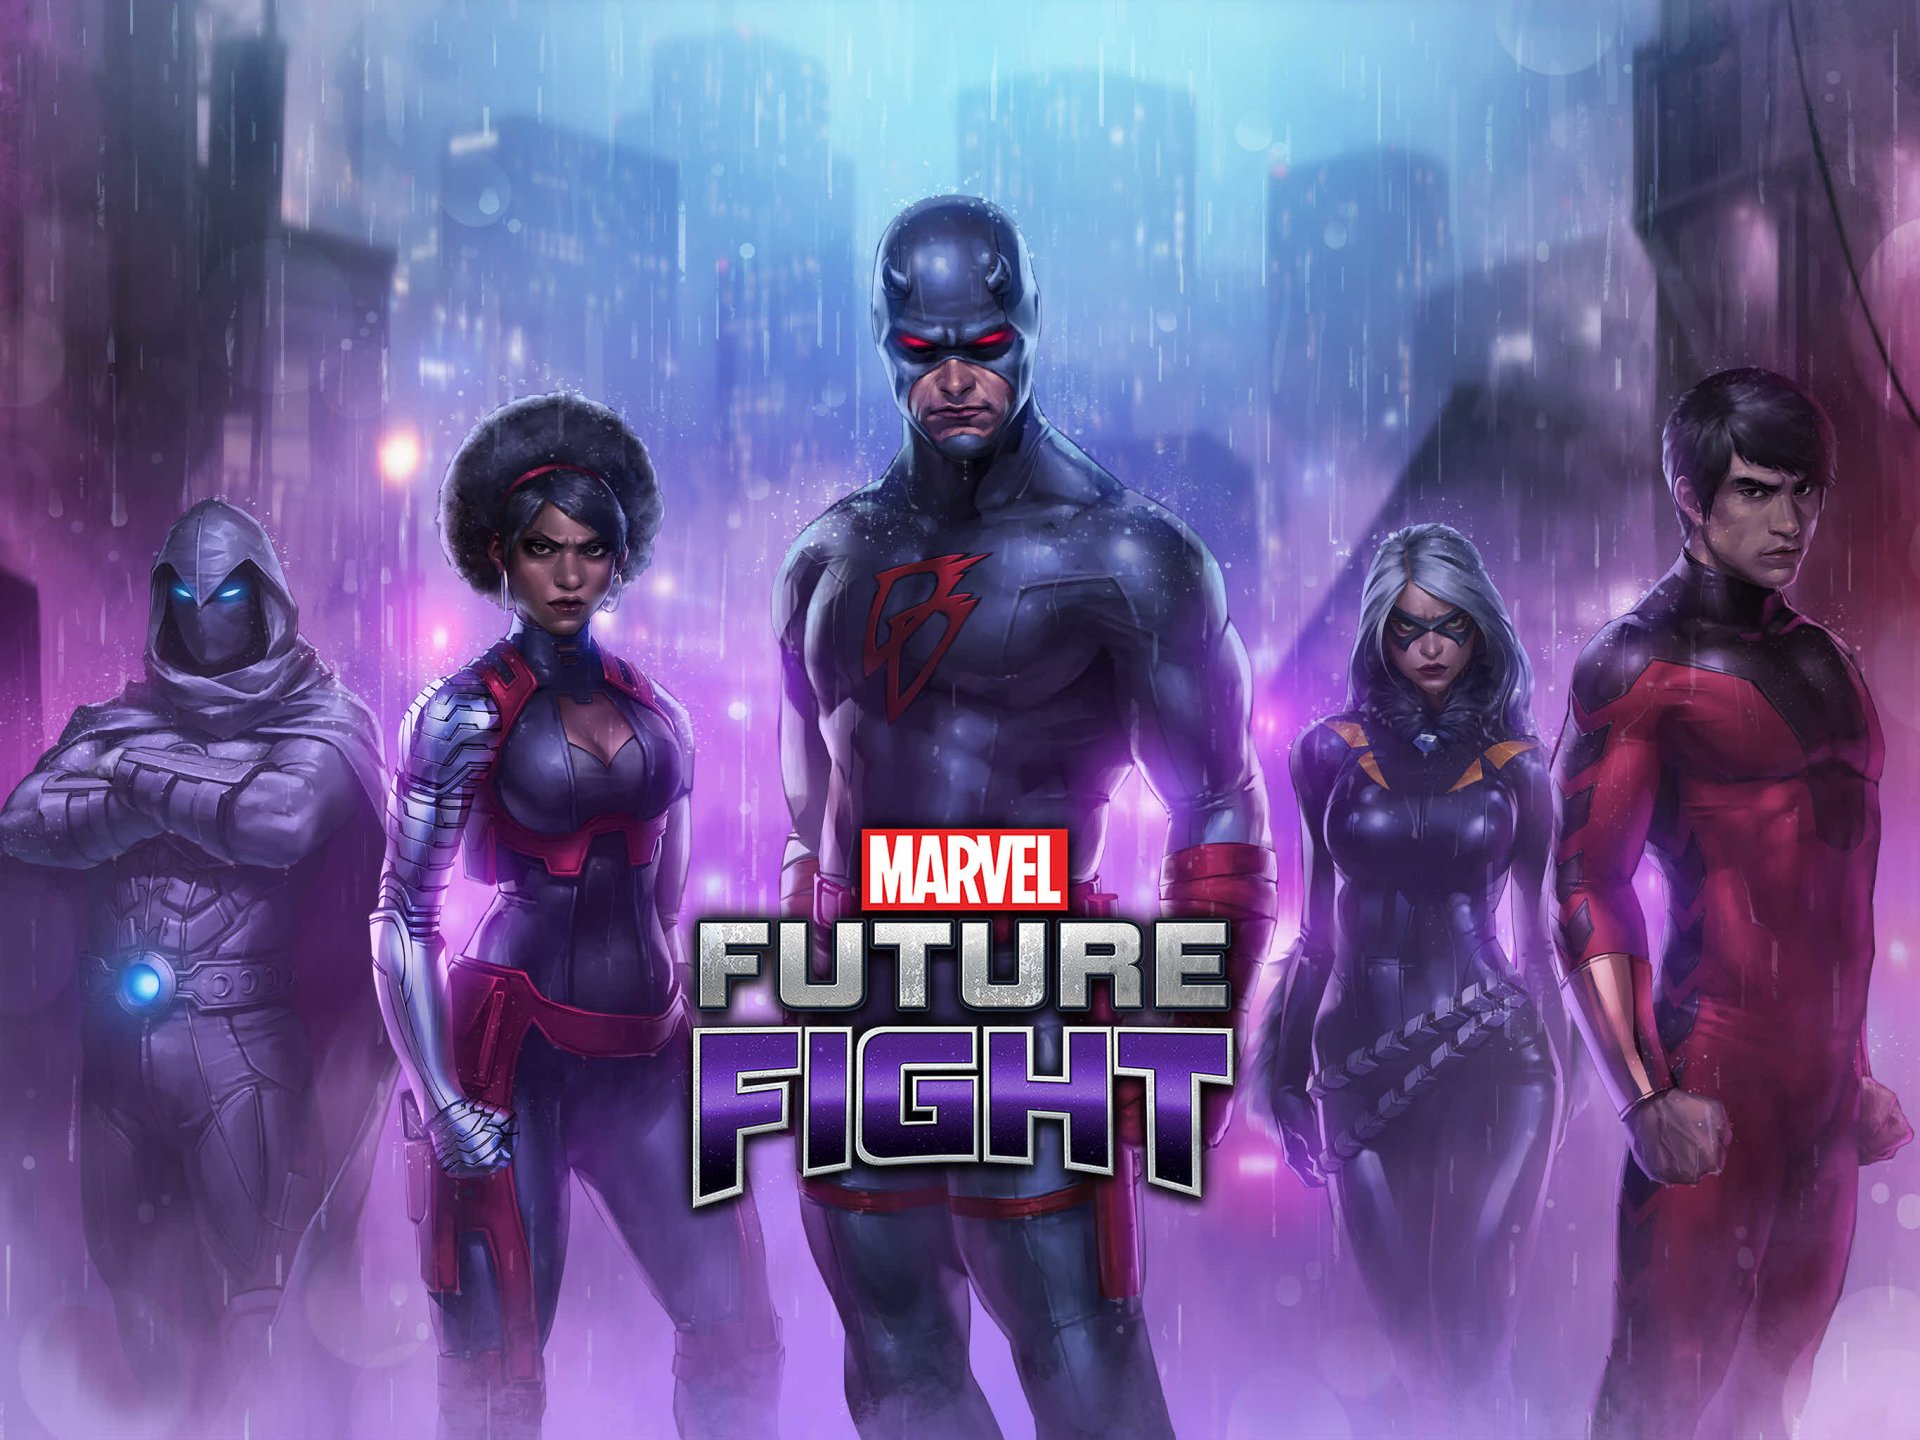 Video Game - MARVEL Future Fight  Daredevil Misty Knight Shang-Chi Moon Knight Black Cat (Marvel Comics) Wallpaper